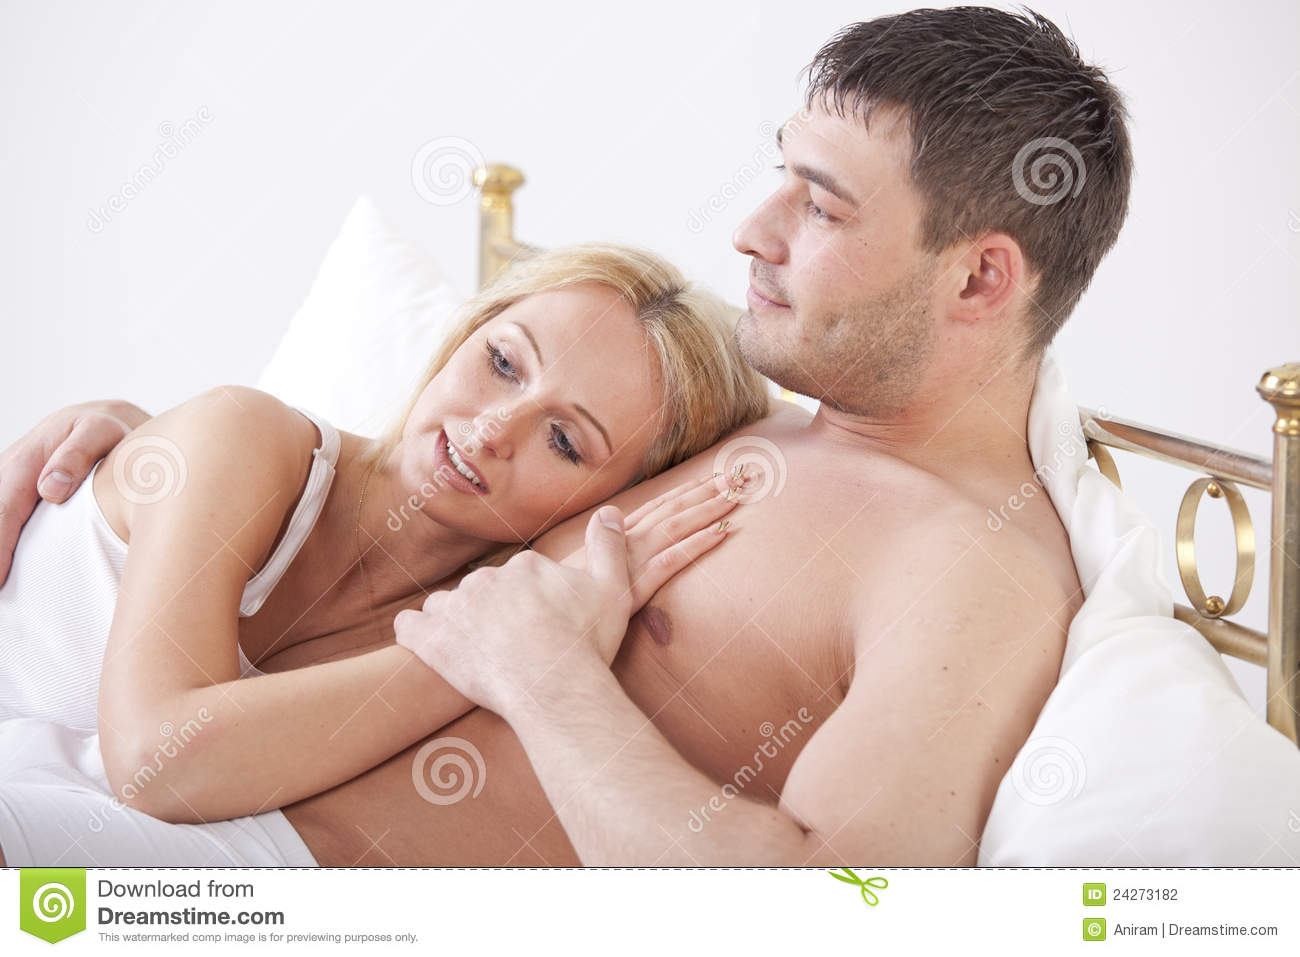 Cuddling couple in bed Stock Photography. Husband Wife Cuddling Bed Stock Photos  Images    Pictures   242